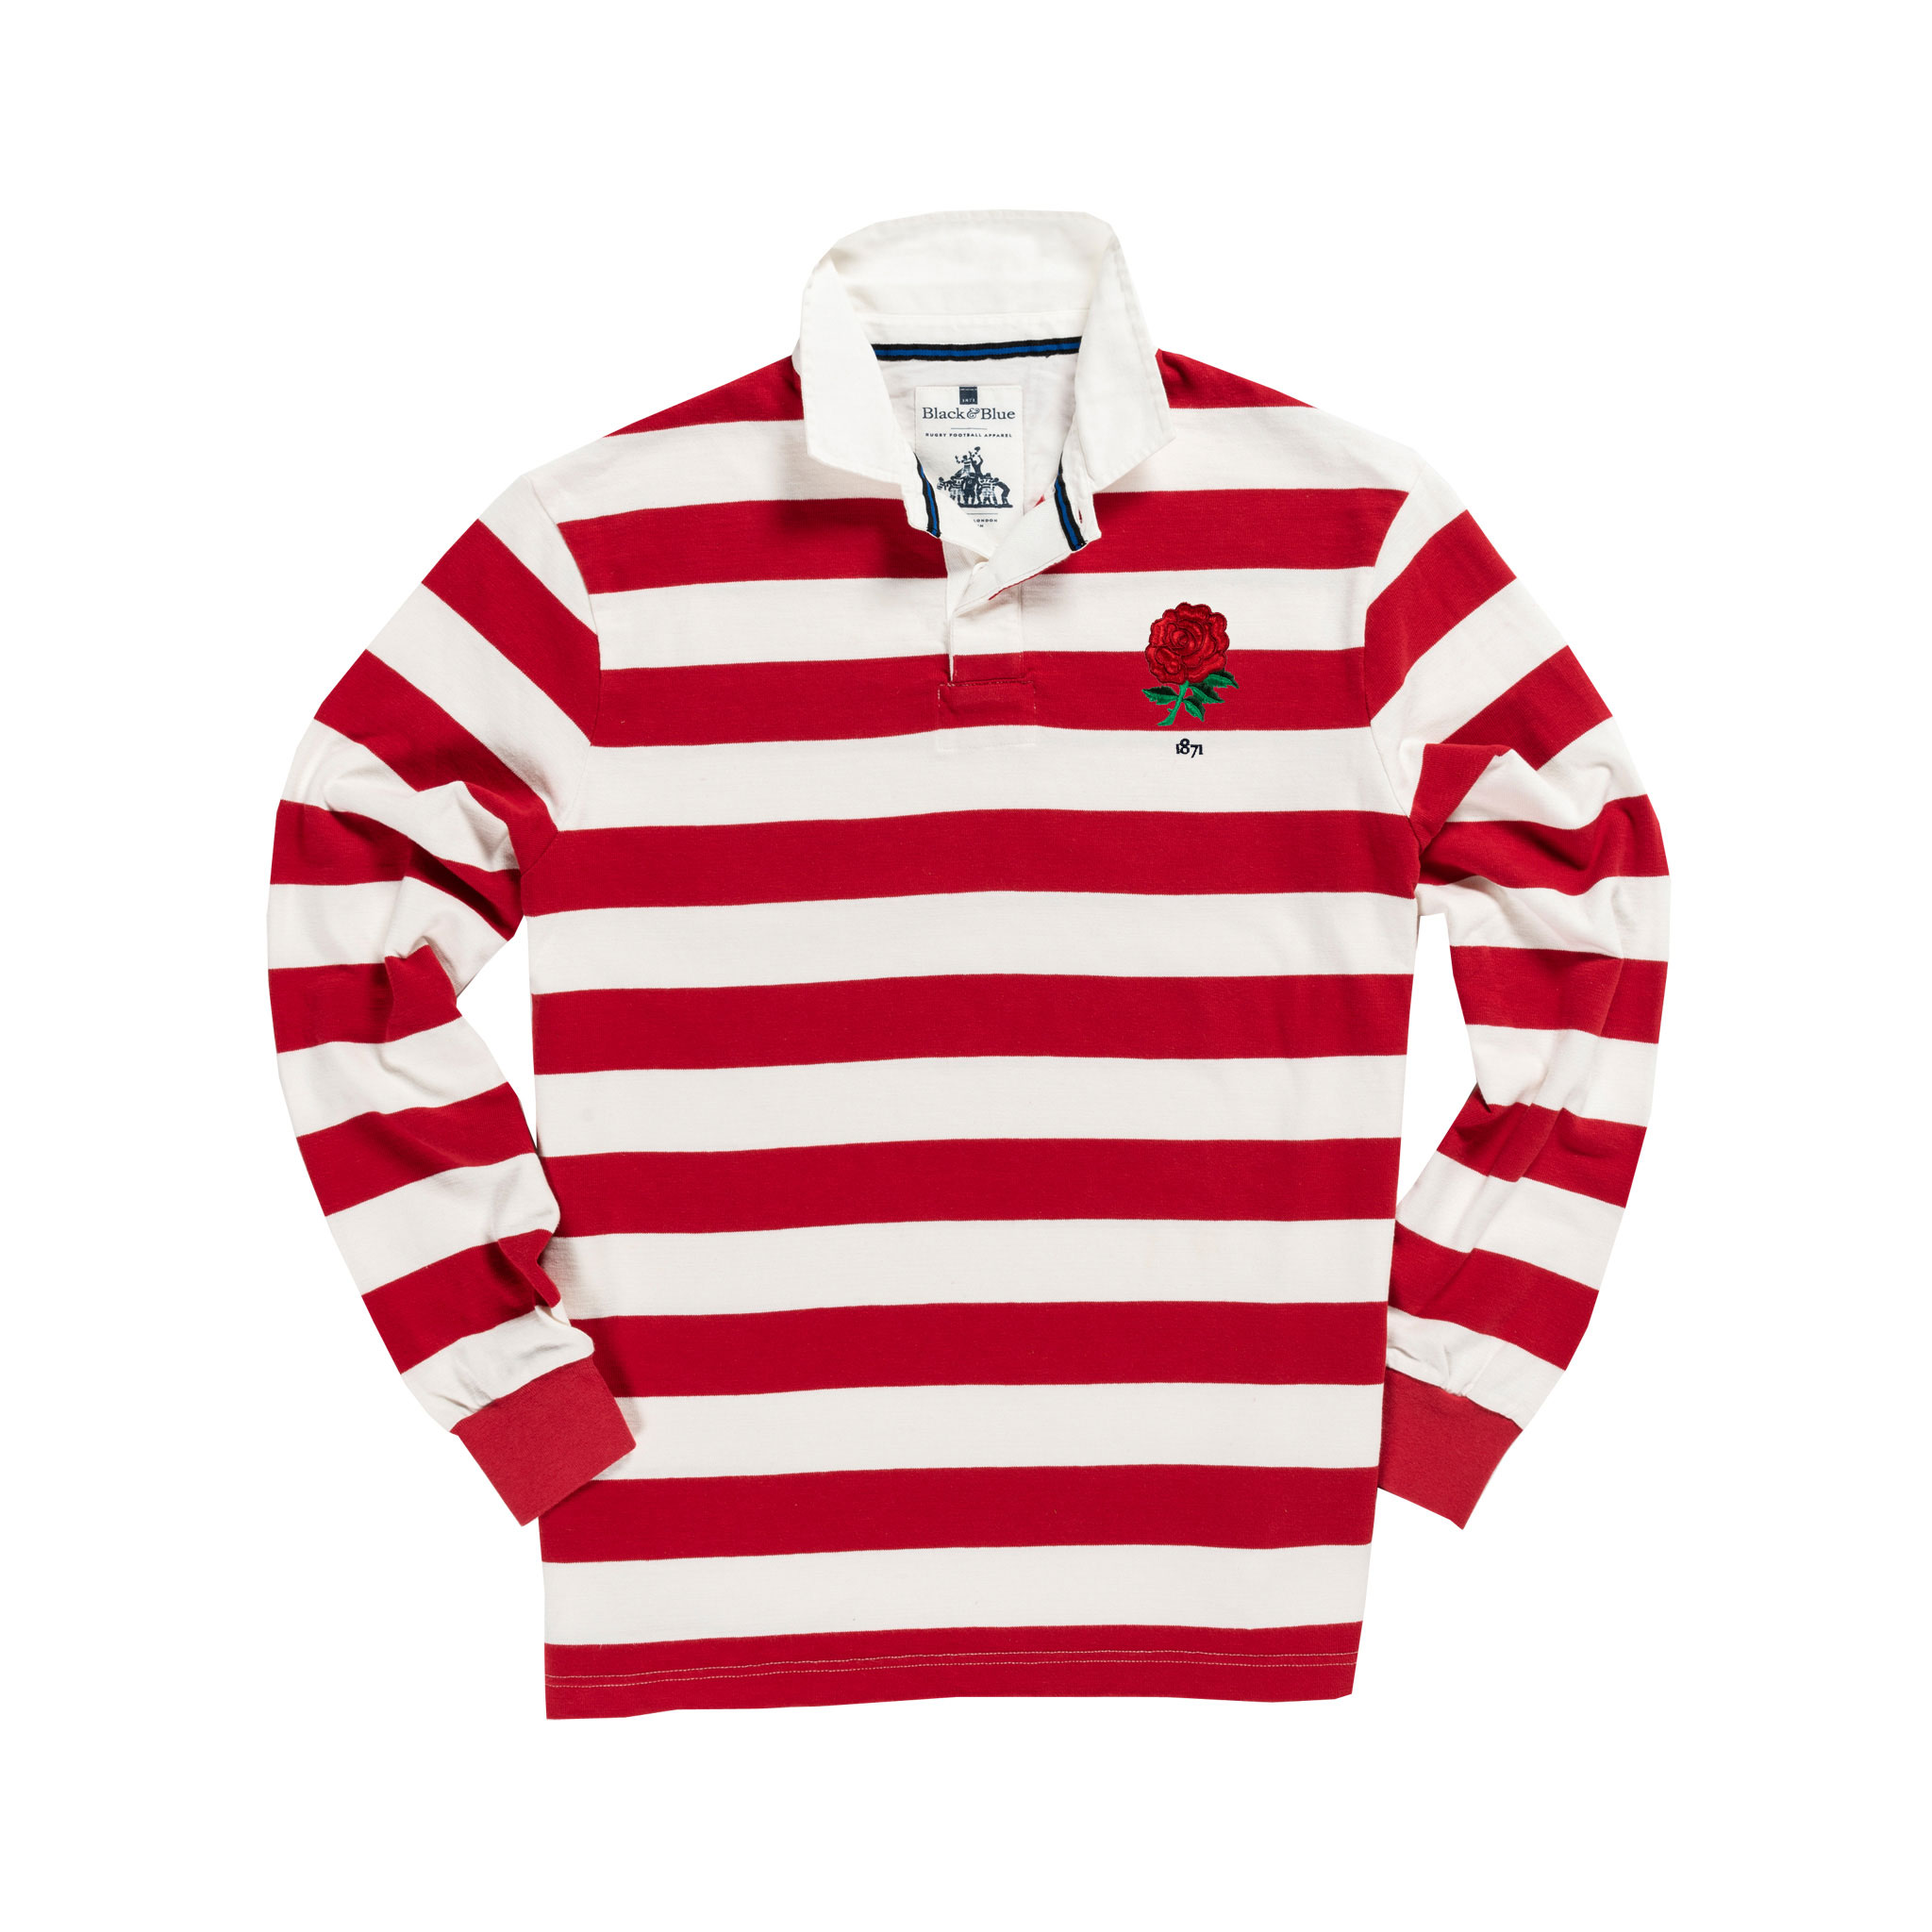 England 1871 Sky Red and White Vintage Rugby Shirt